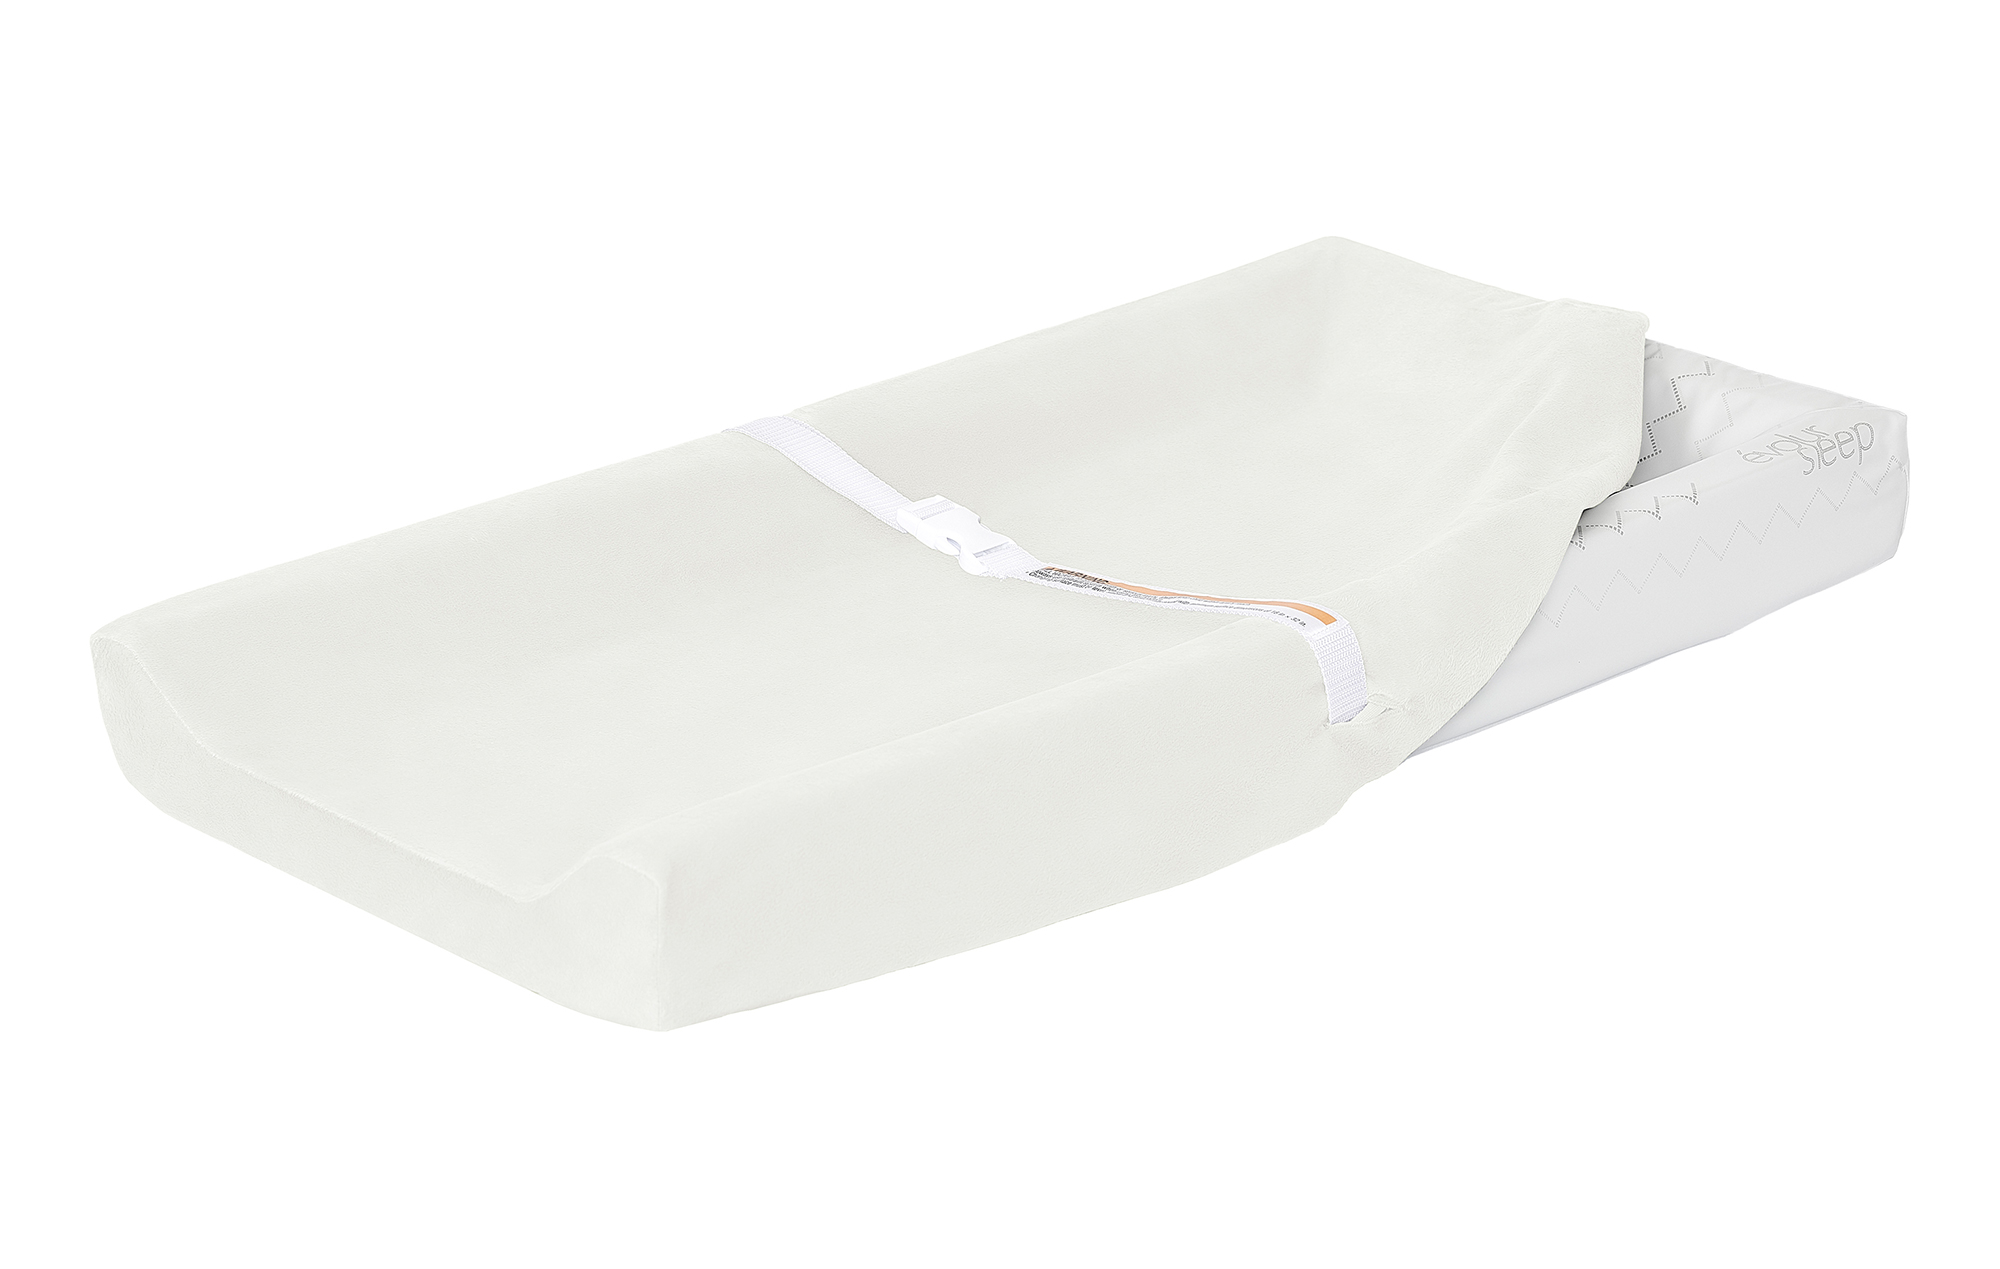 Evolur 3-Sided Contour Changing Pad with 2 Cotton Covers